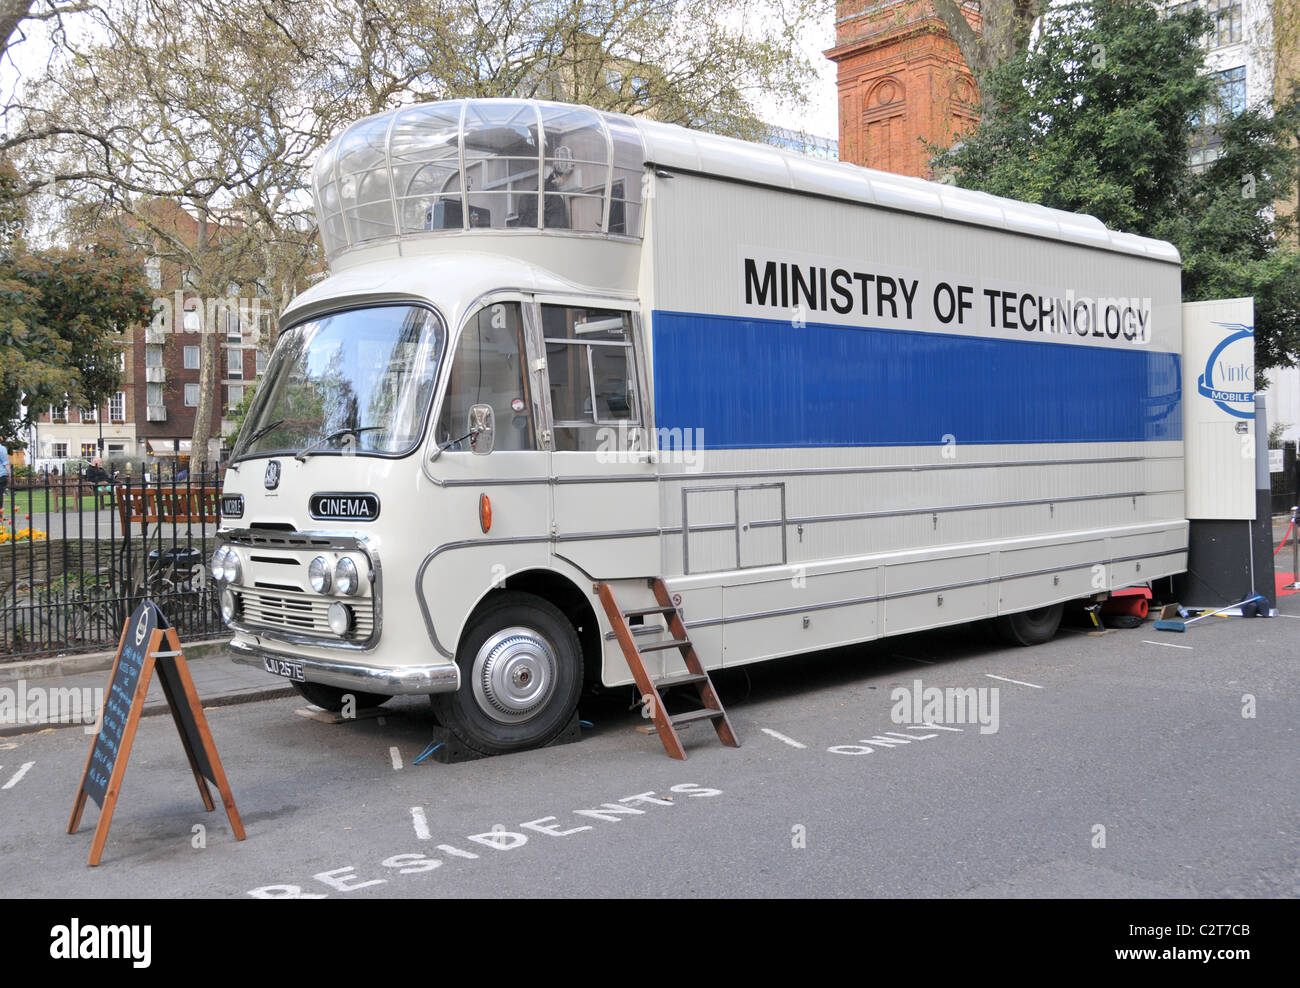 Mobile Cinema Soho square Ministry of Technology films movies 1950s - Stock Image